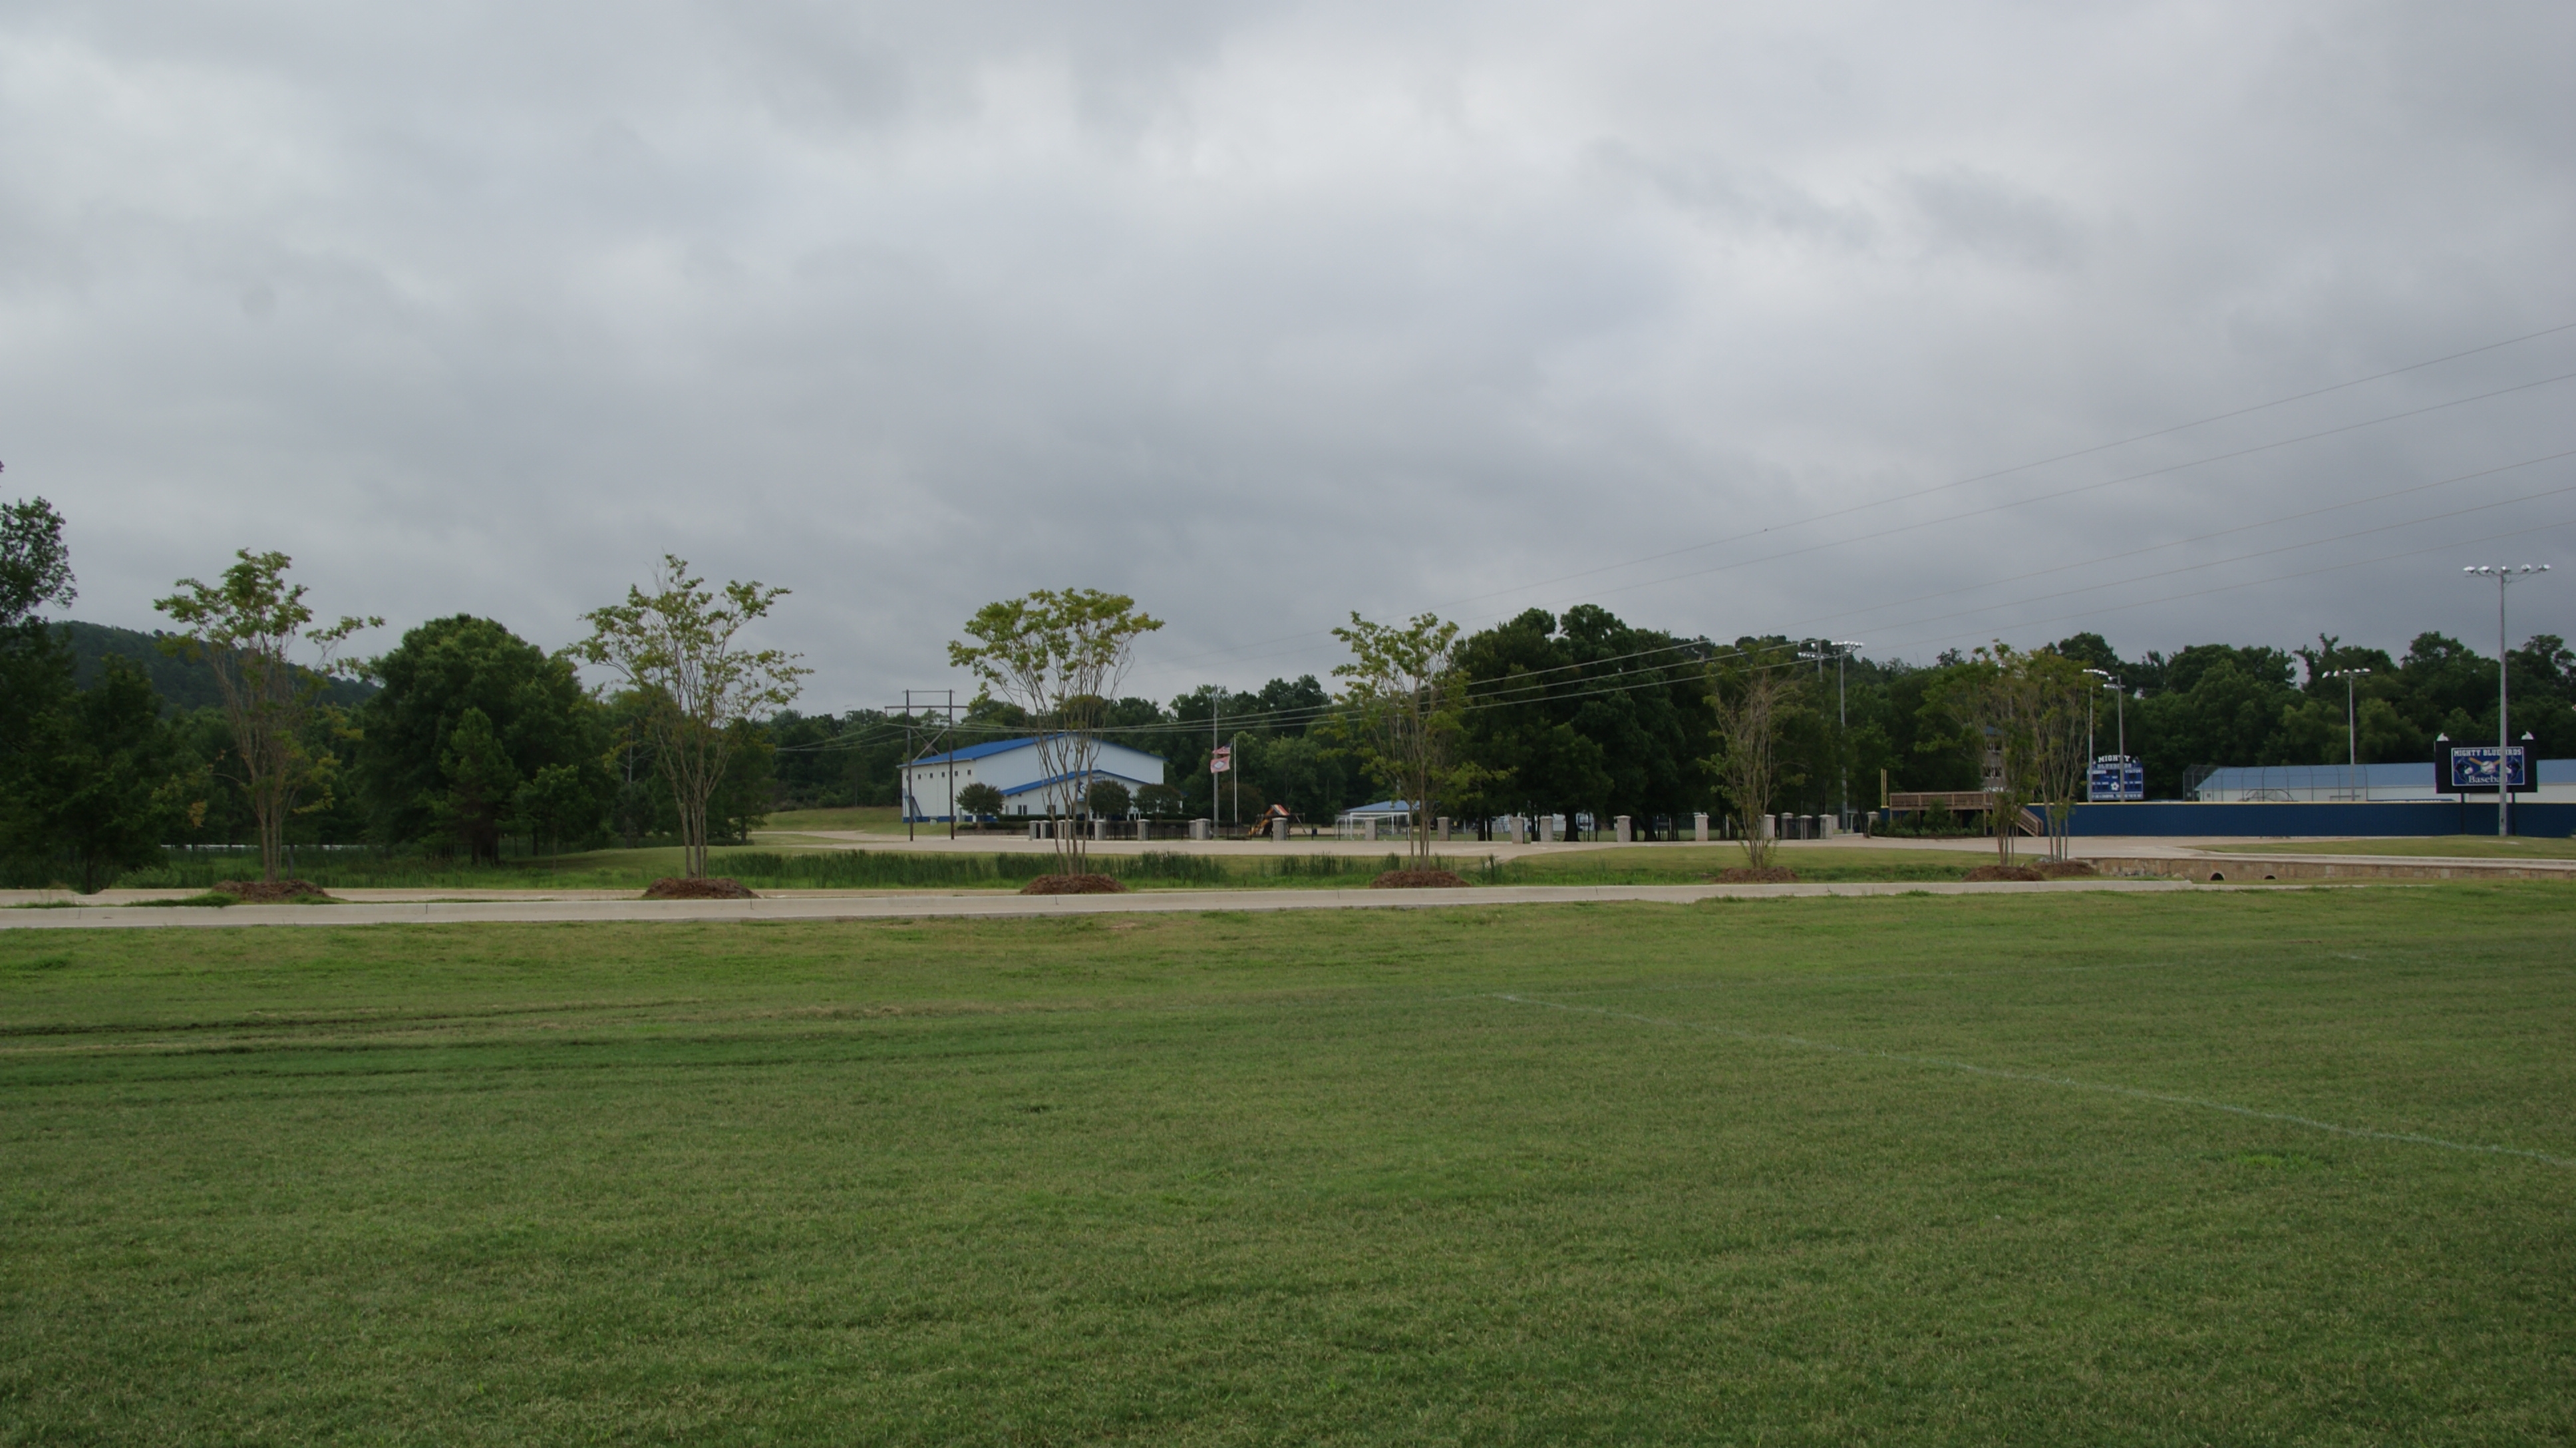 view of gym from Field 2